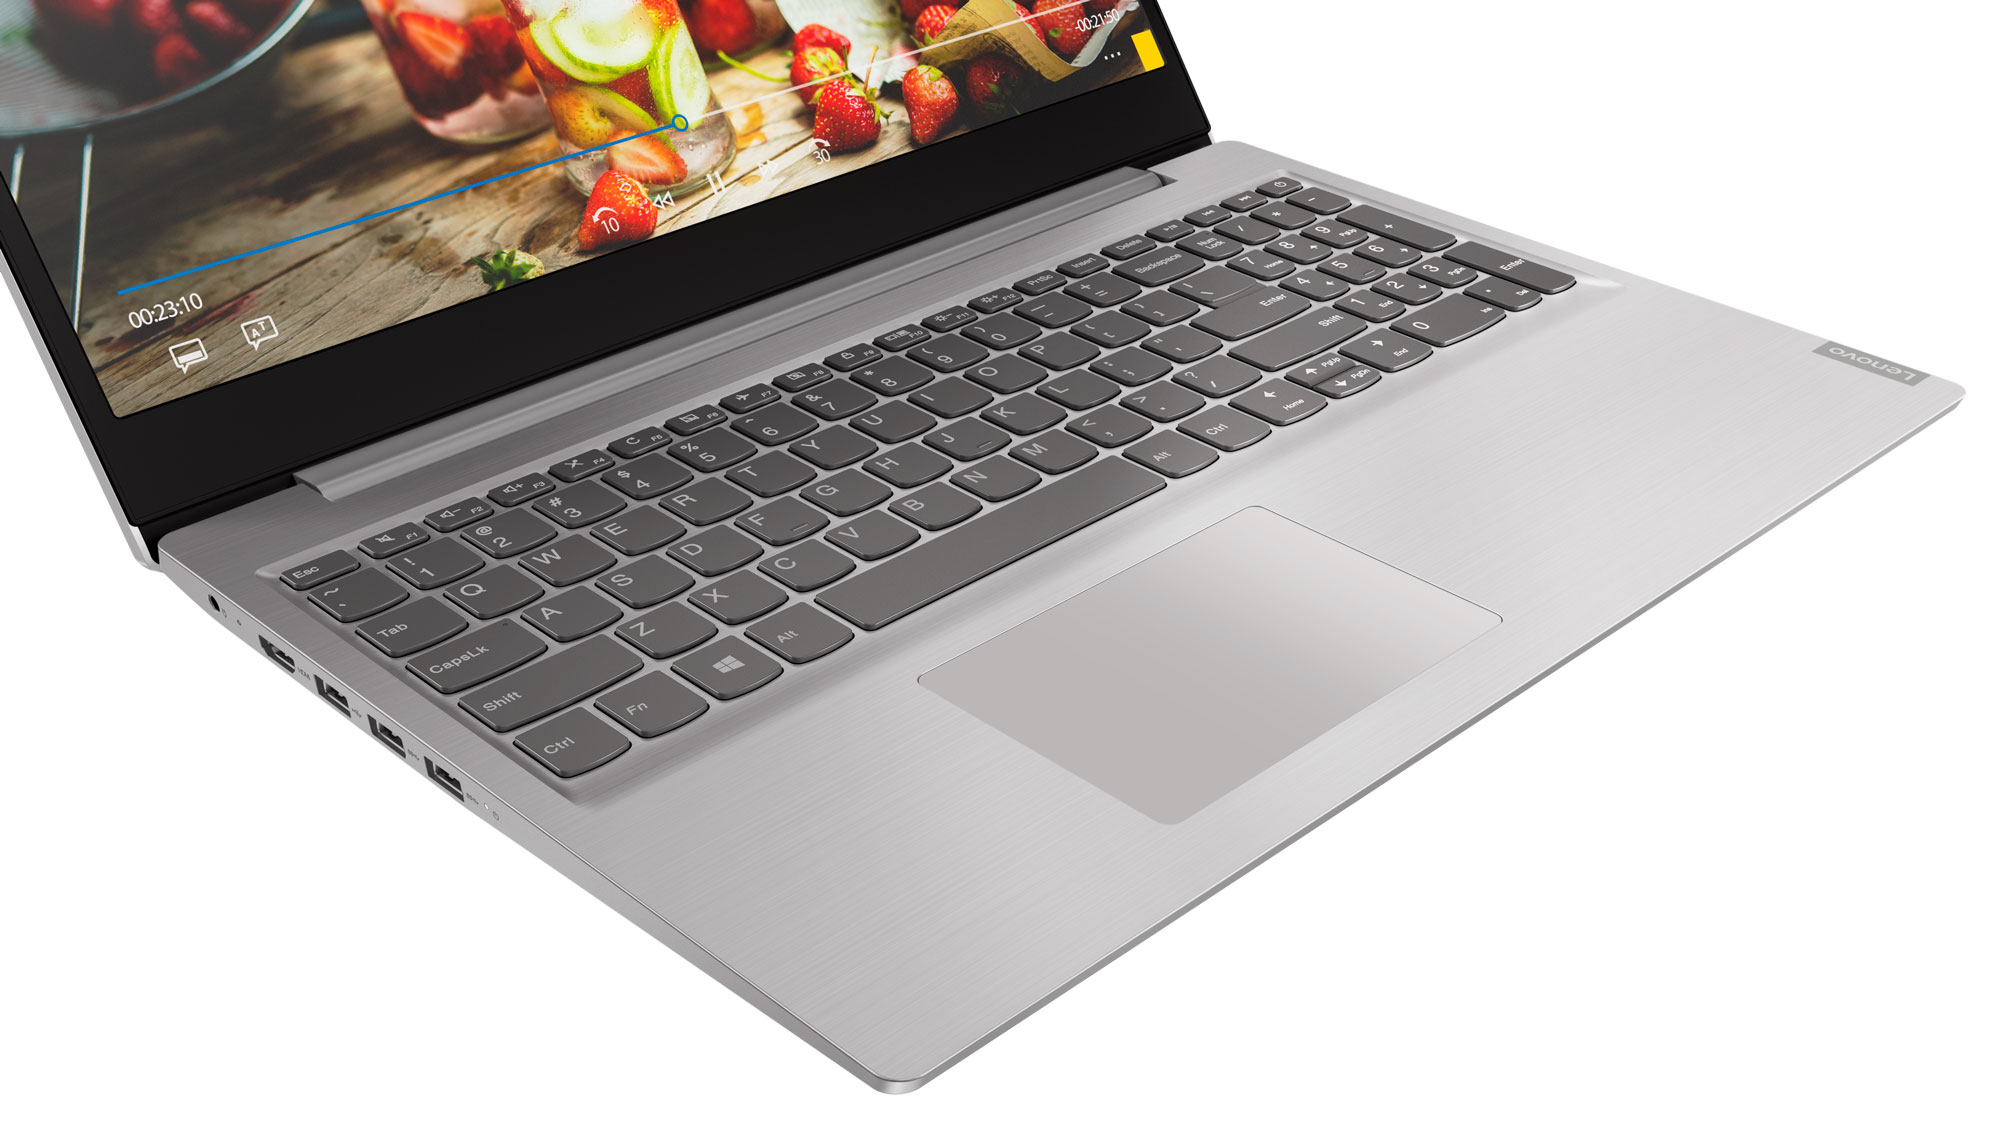 Фото  Ноутбук Lenovo ideapad S145-15IGM Grey  (81MX003QRE)